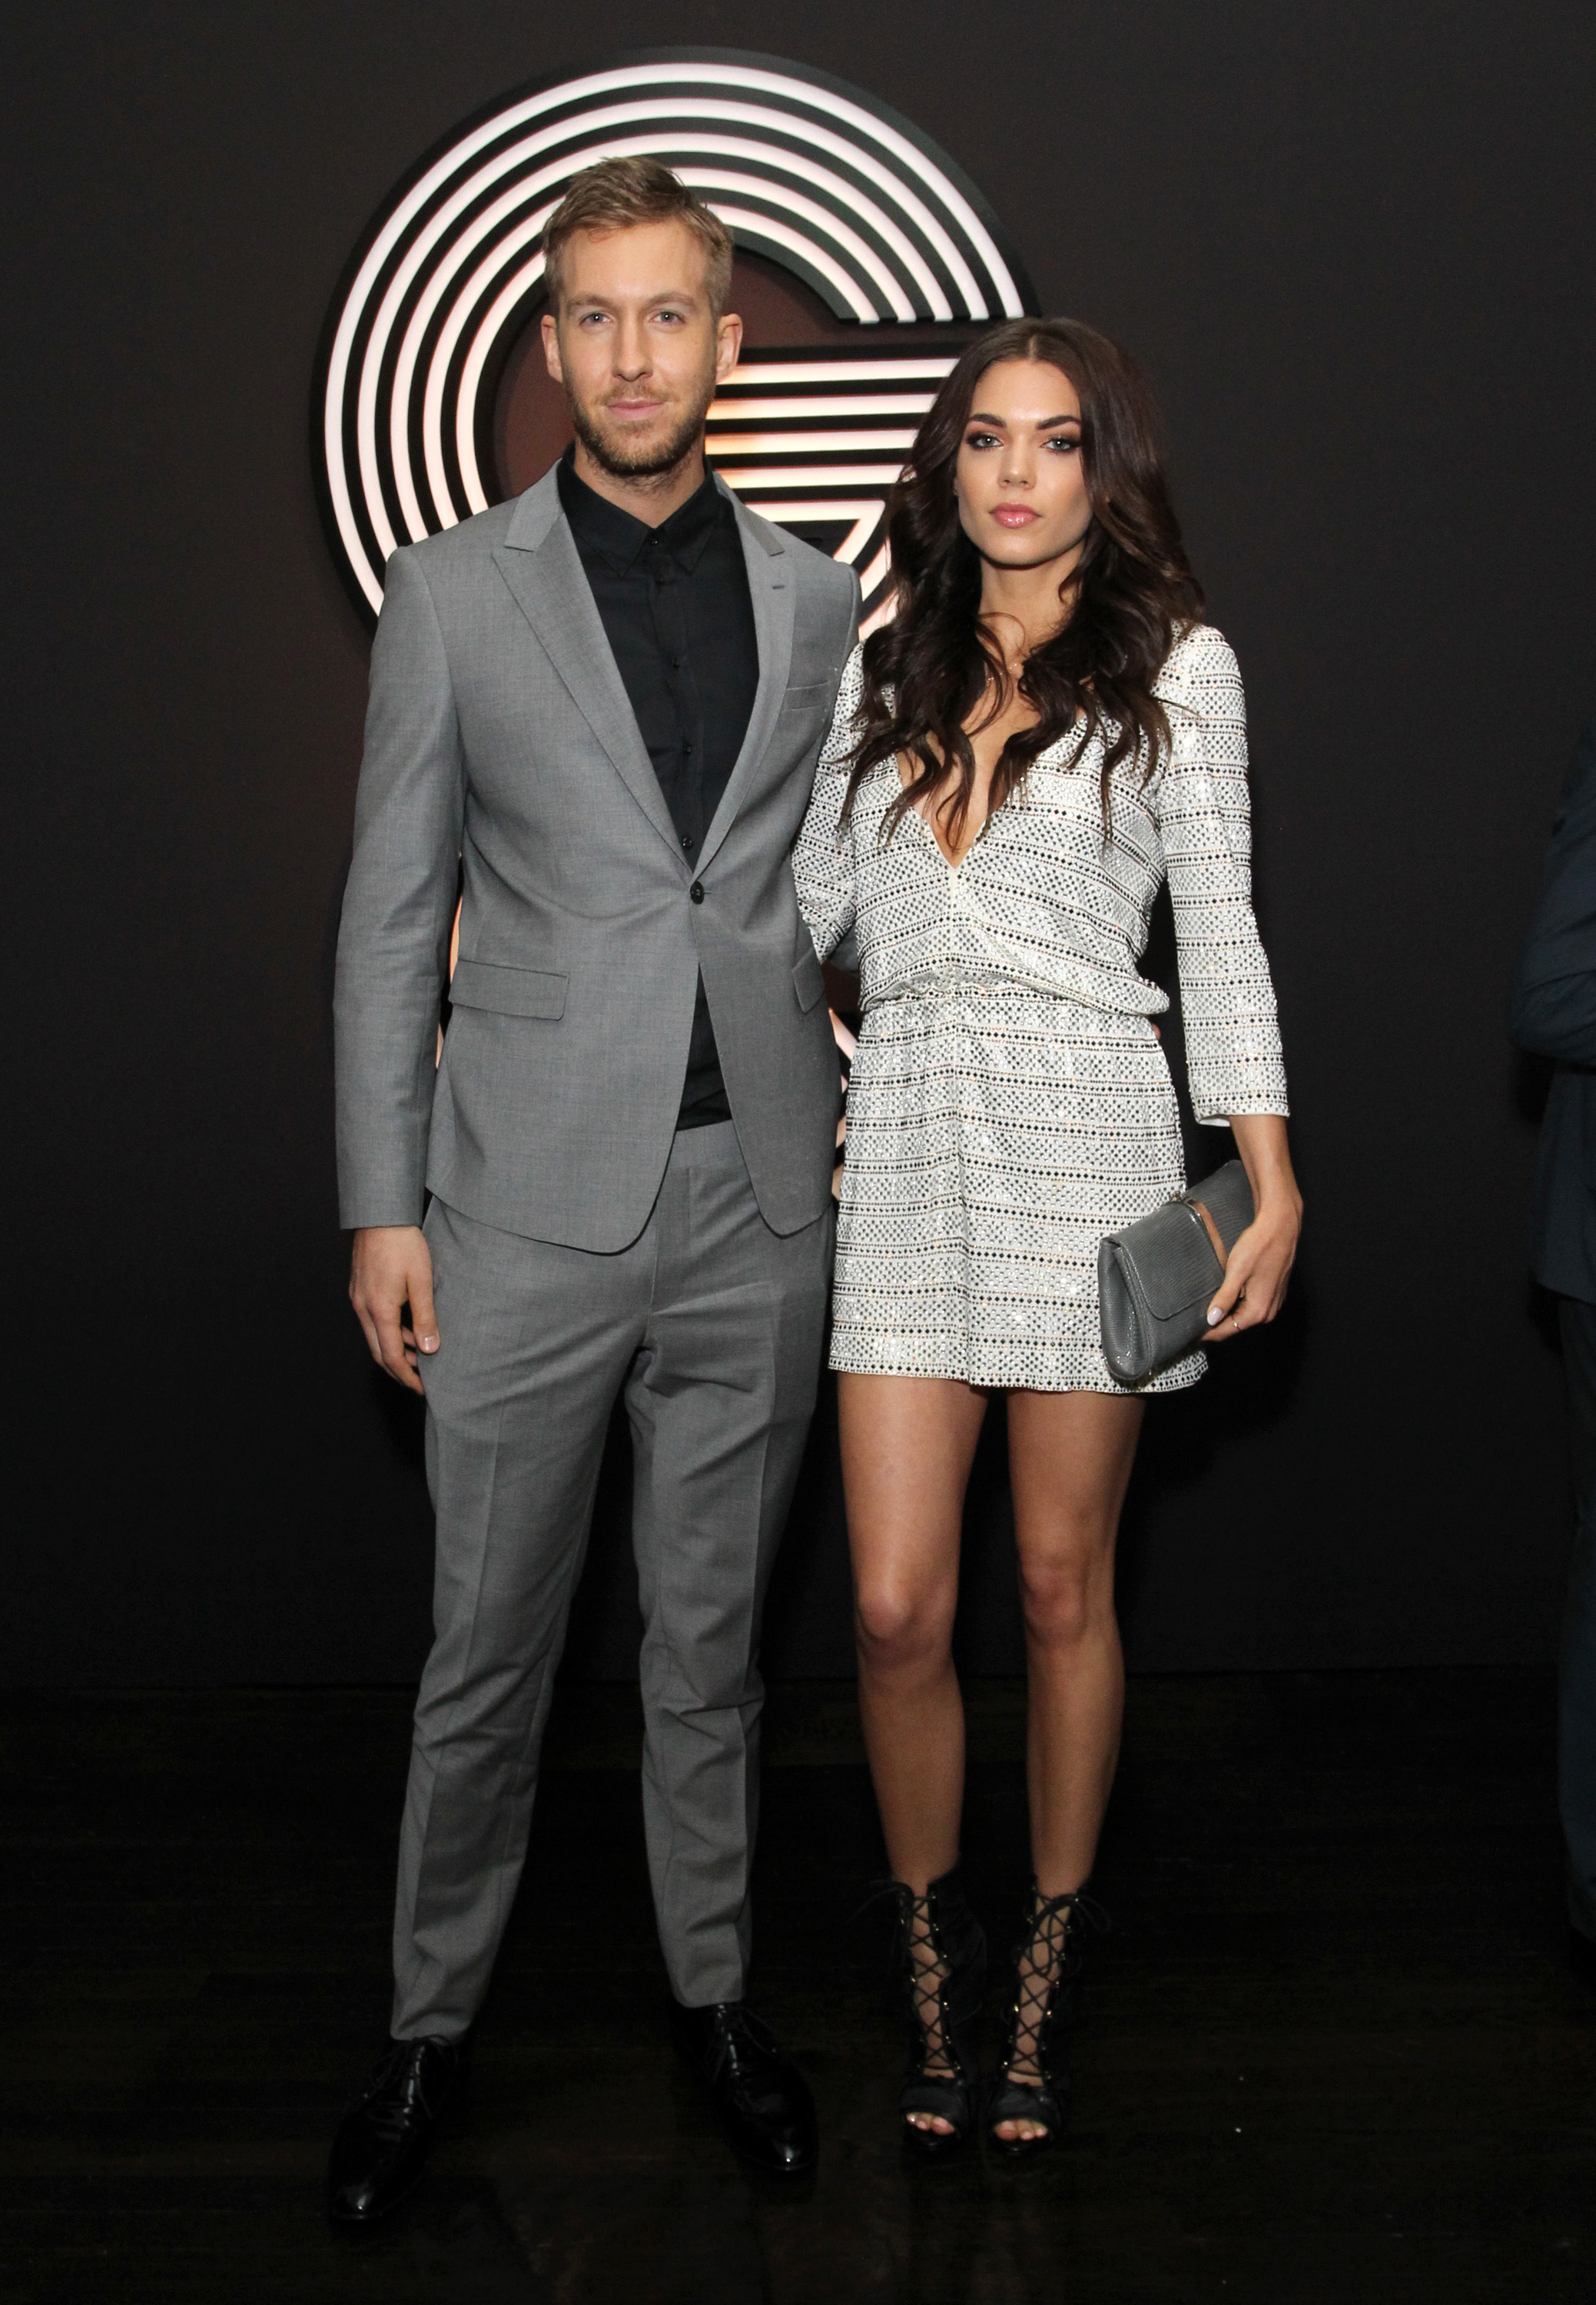 Calvin Harris and Aarika Wolf attend the GQ and Giorgio Armani Grammys afterparty at the Hollywood Athletic Club in Hollywood on Feb. 8, 2015.